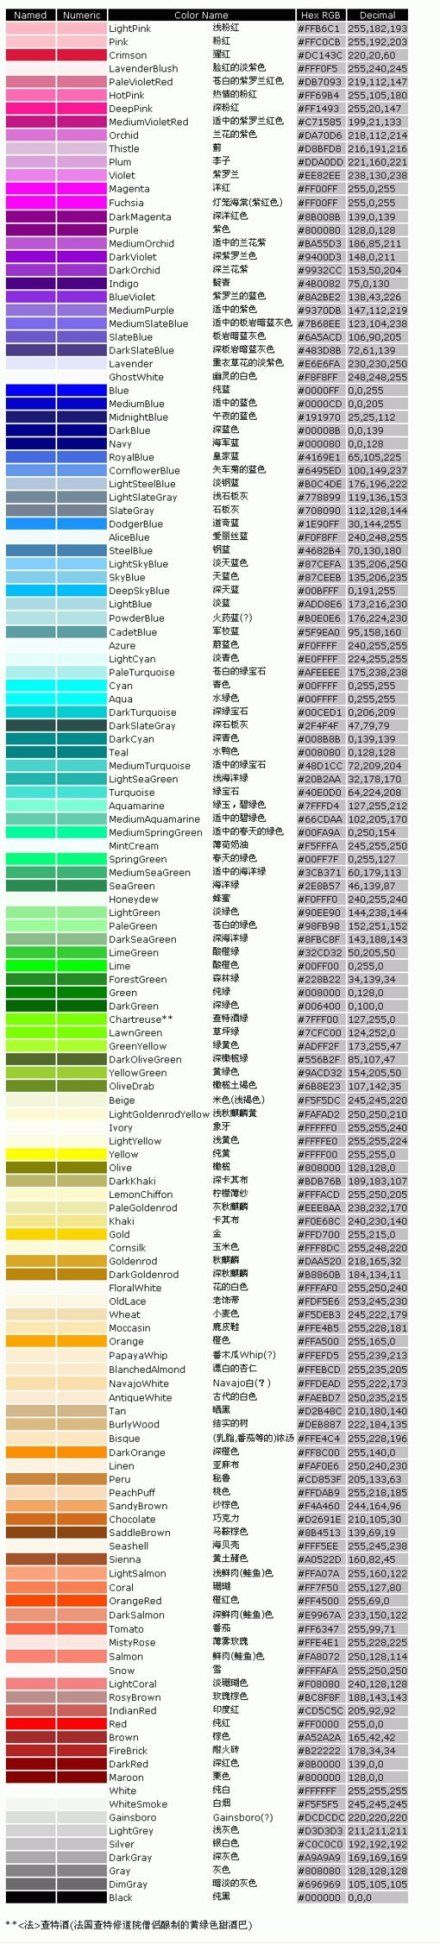 Hex RGB Color Chart with Color Names, Hex Rgb Codes and Decimals